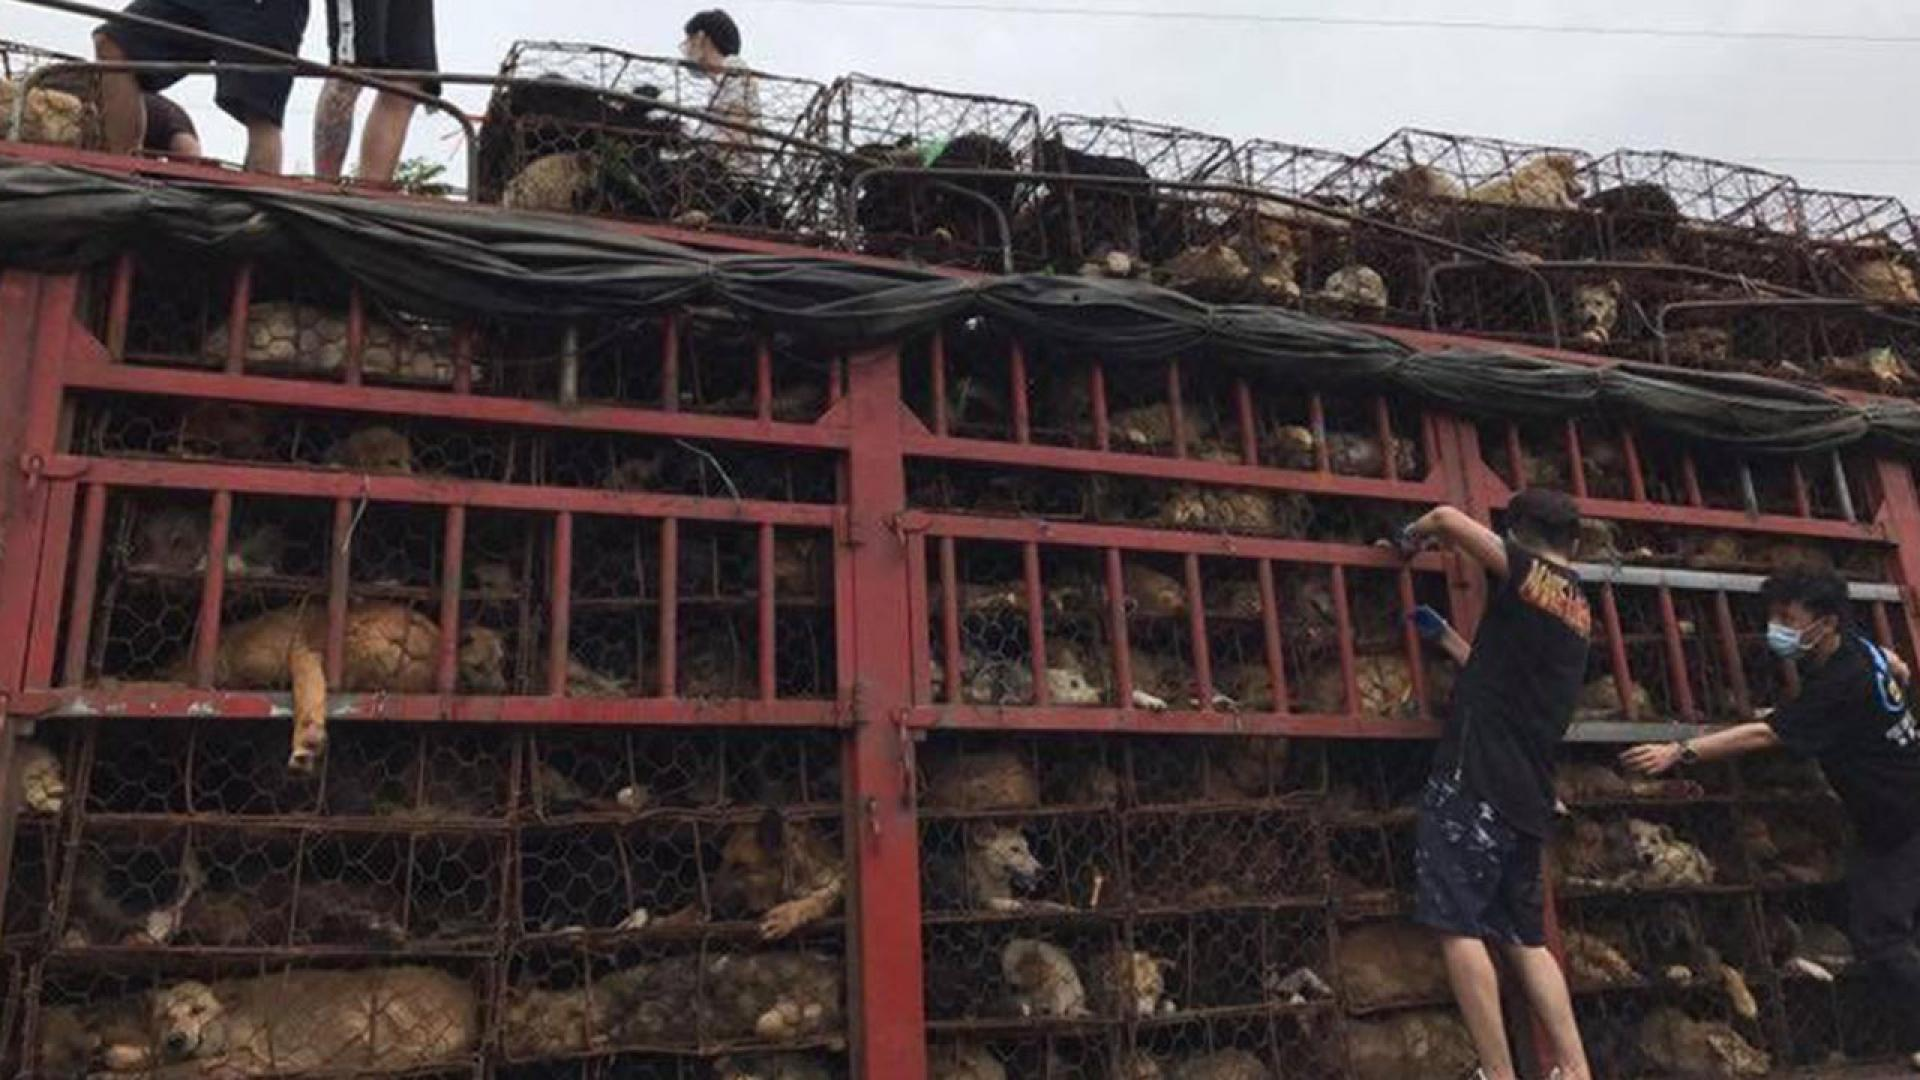 No Dog Left Behind recused 79 dogs from China